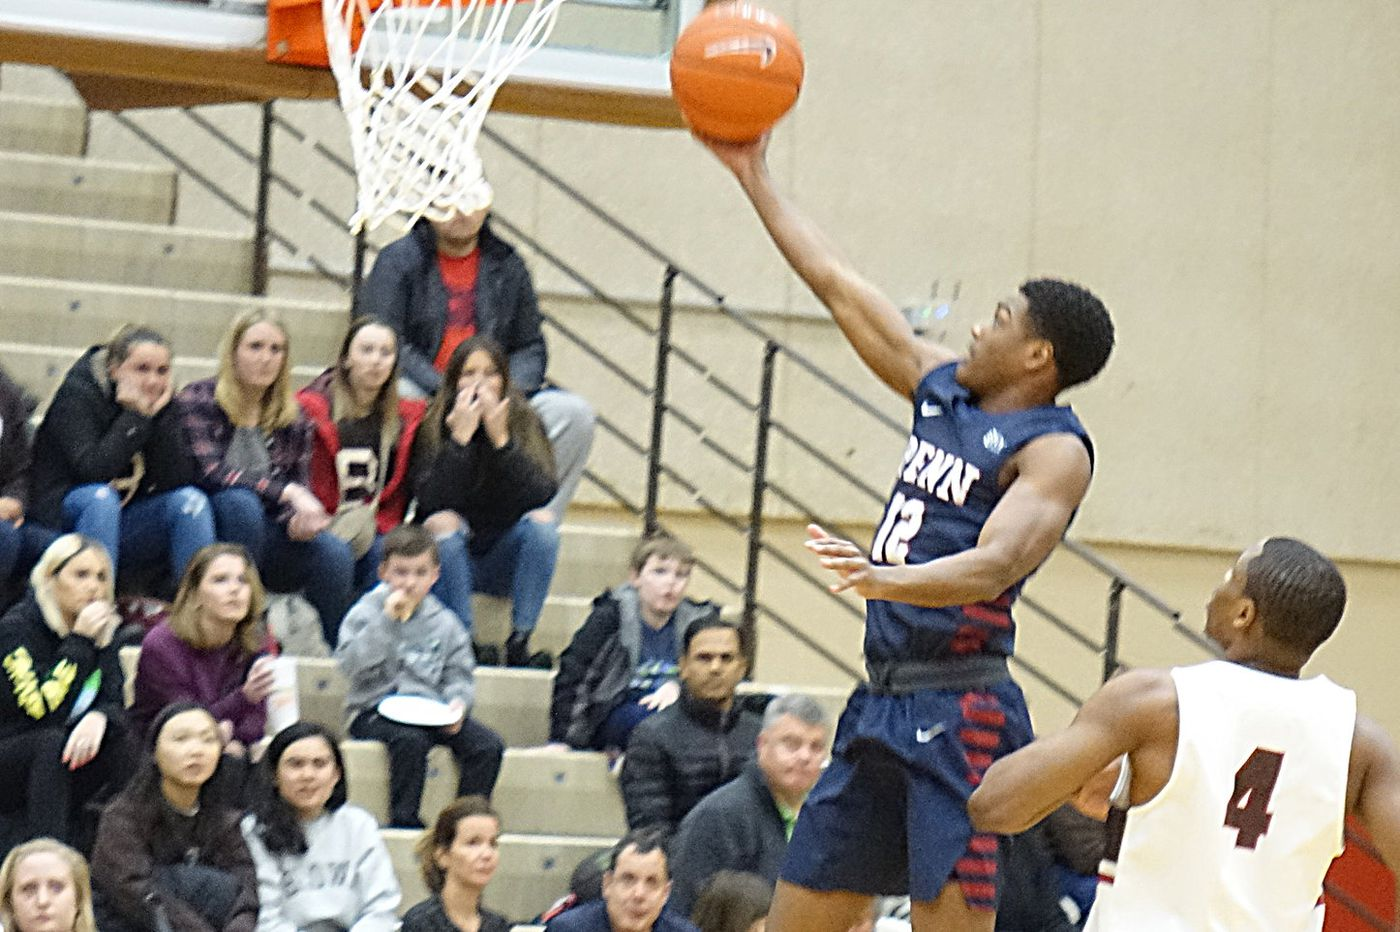 Three-point shooting leads Penn to a 92-82 win at Brown